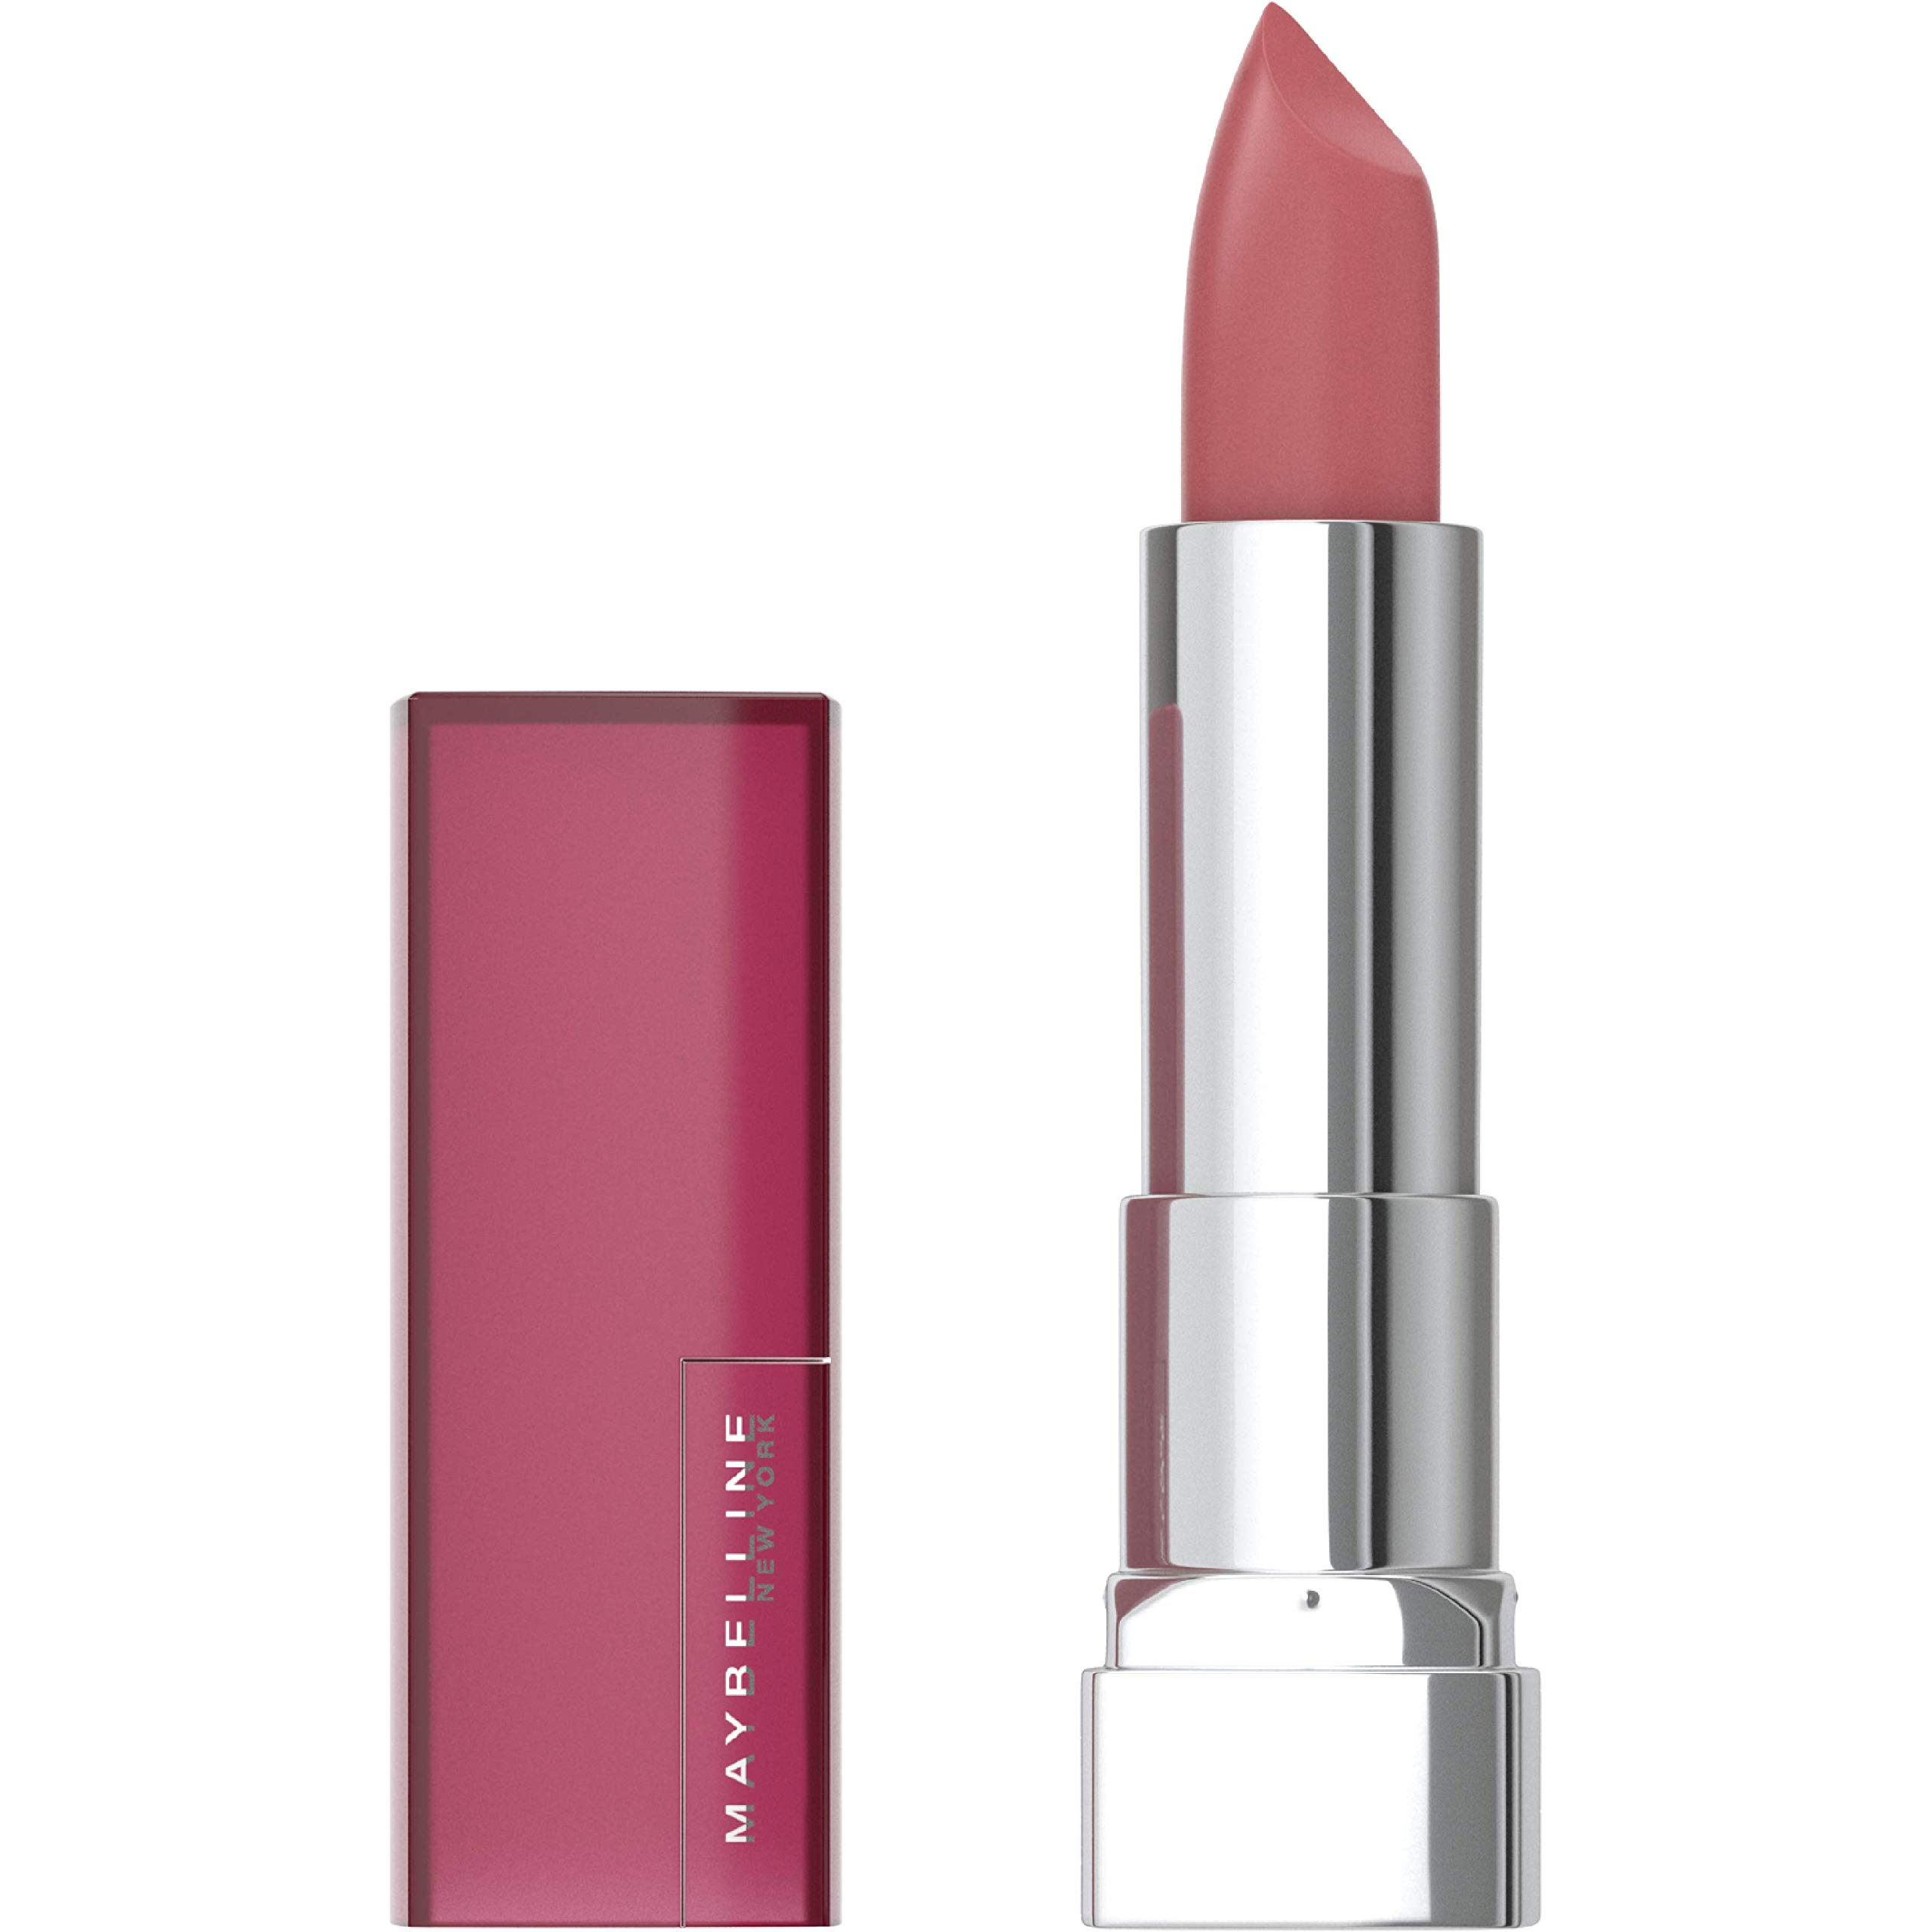 Maybelline New York Sensational Lipstick